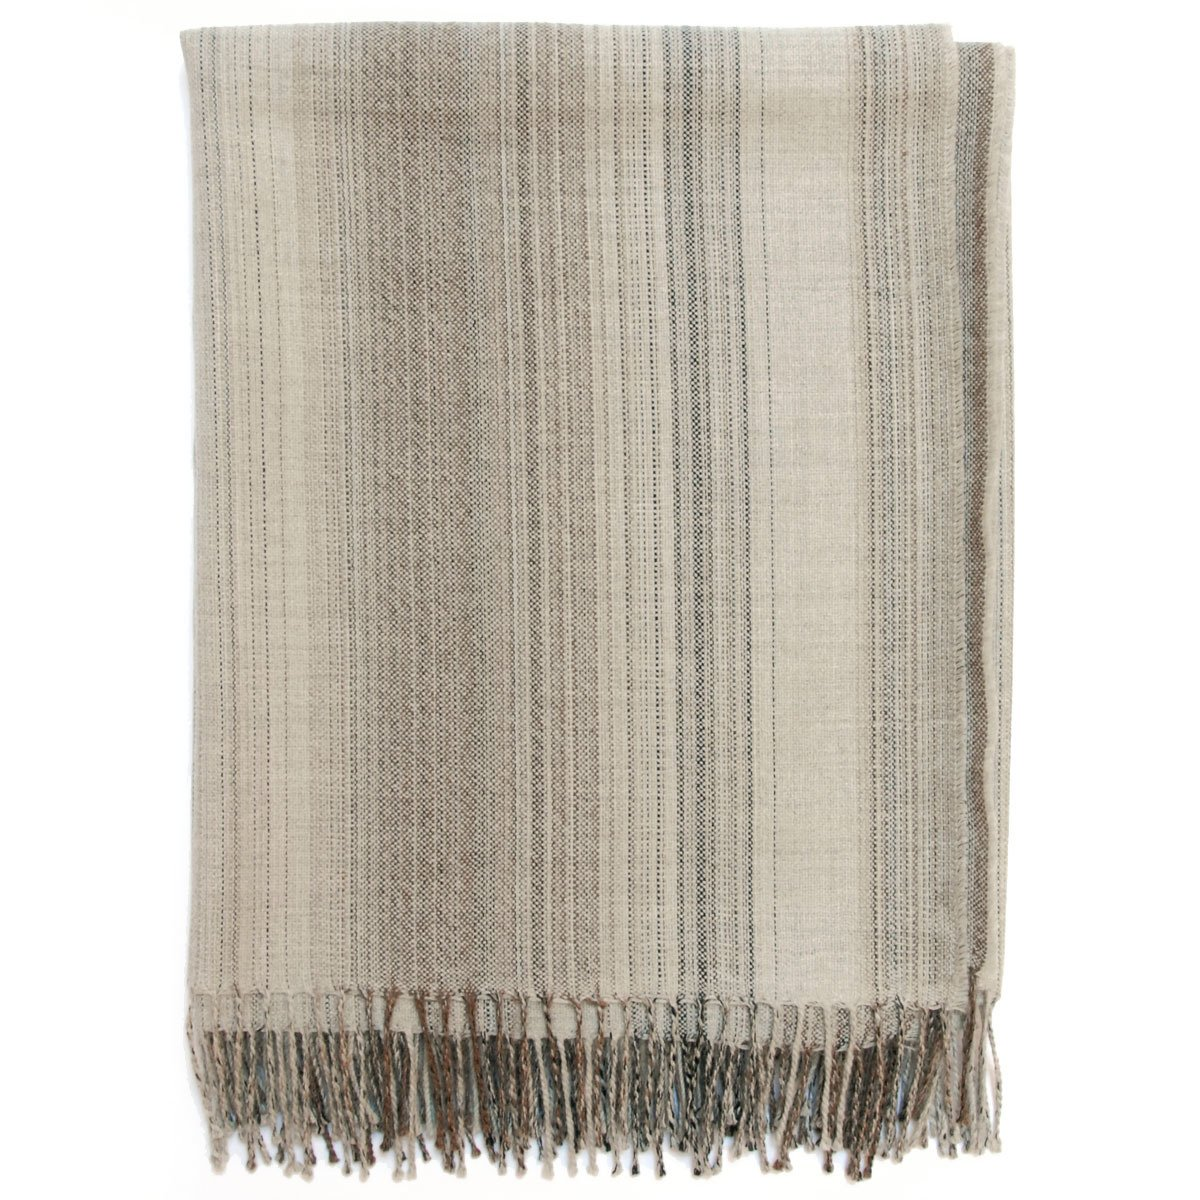 """Jack Neutral Throw by Area Home, $330 from store.dwell.com  Search """"area home ray pillow sham"""" from Cozy Pillows and Throws"""